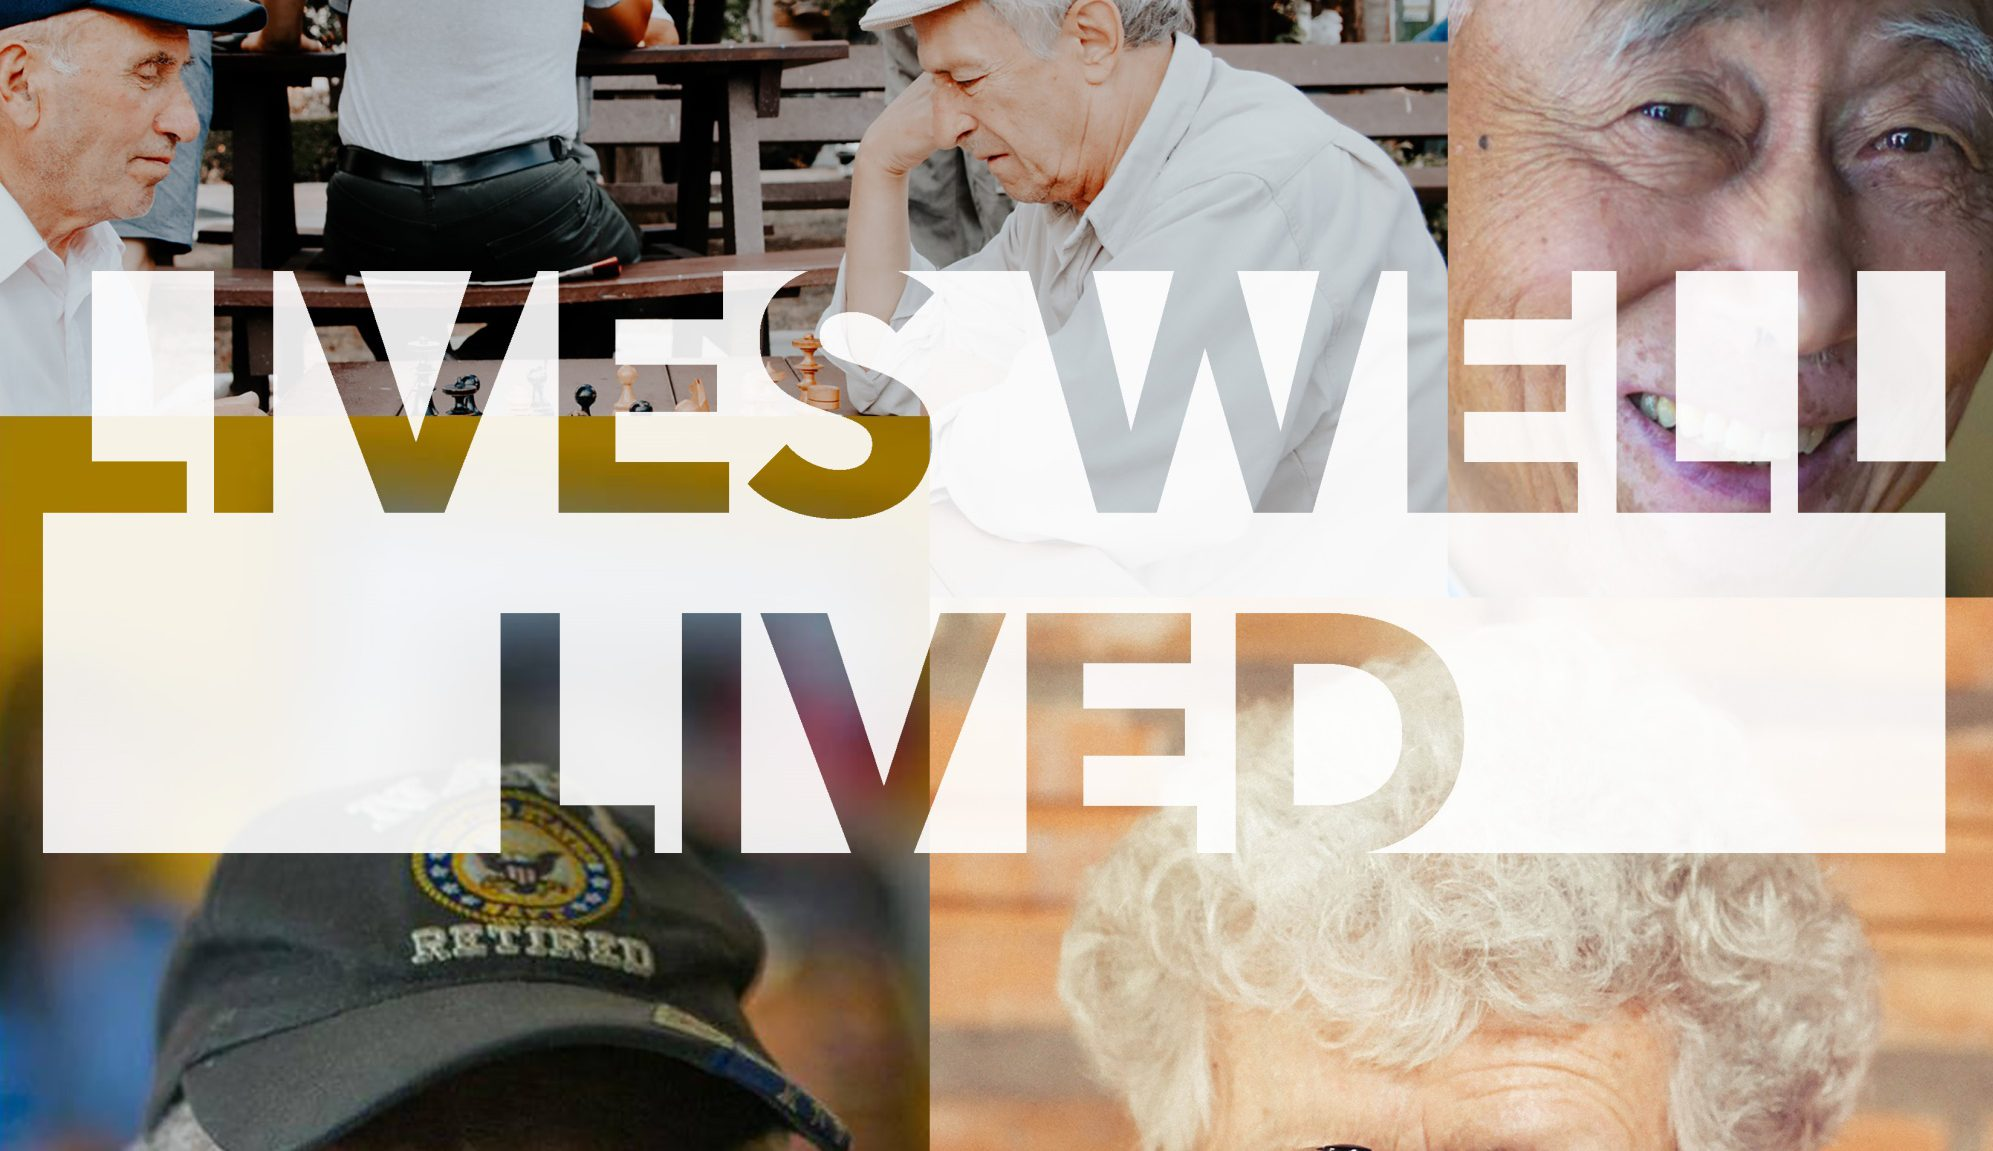 Lives Well Lived Screening & Policy Discussion on Aging